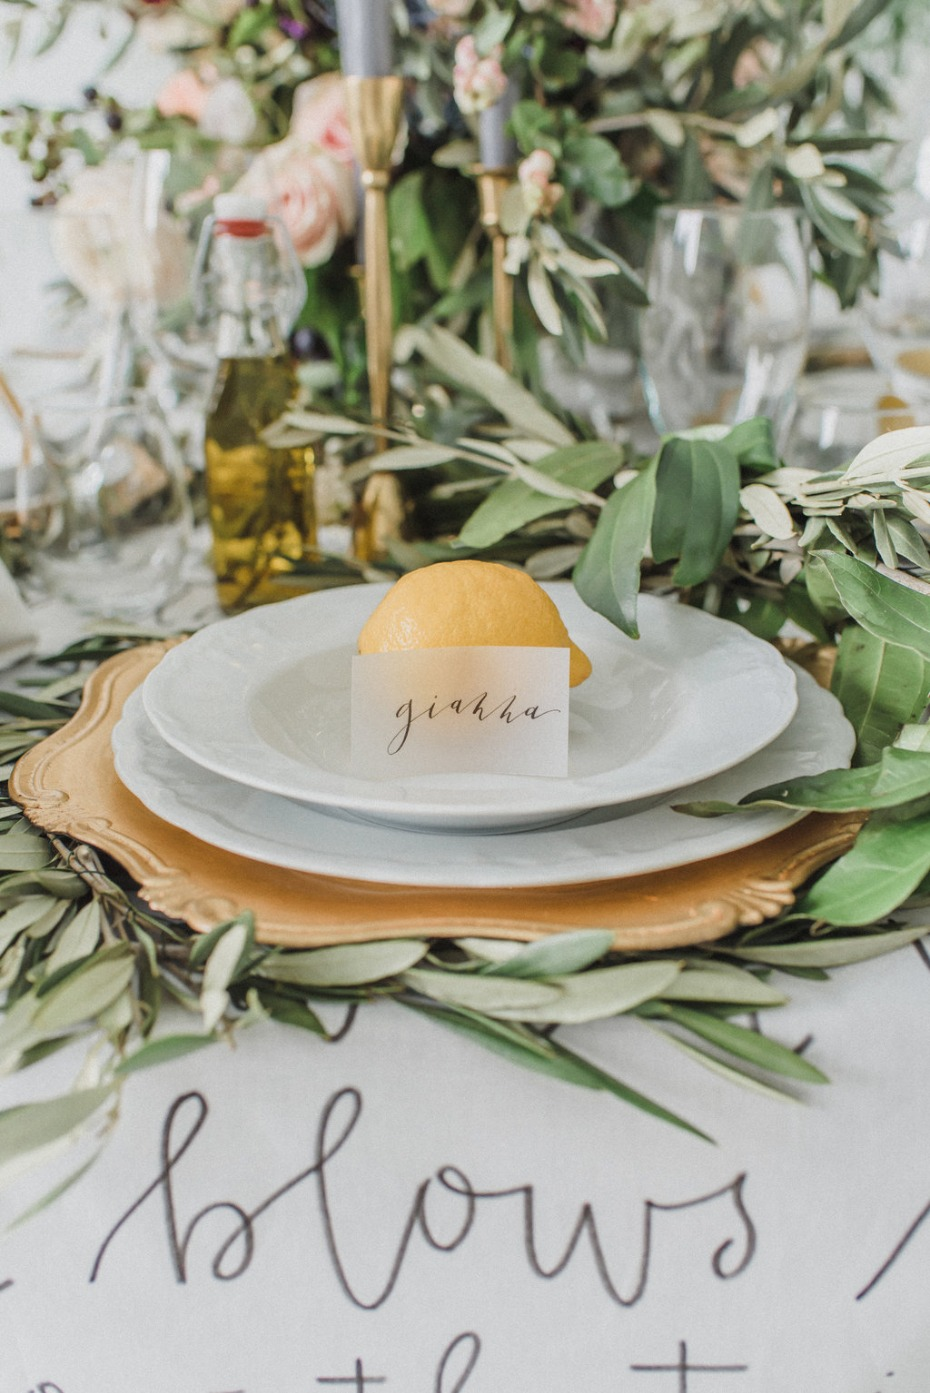 Lemon place setting for a wedding